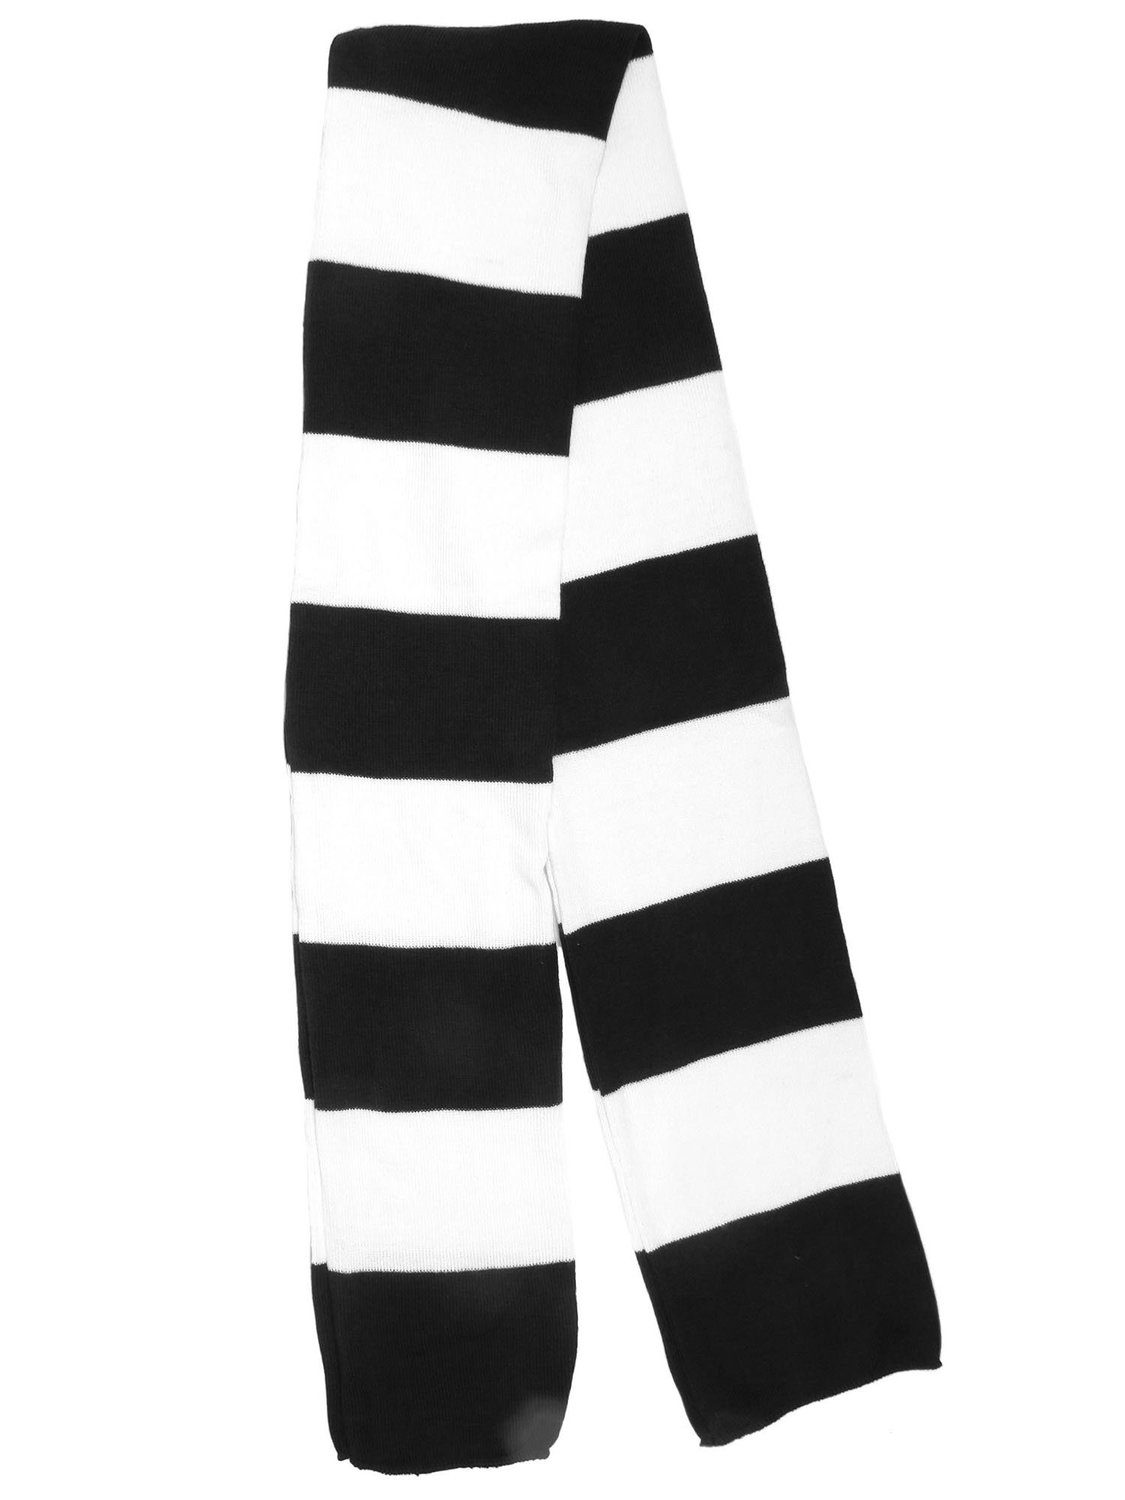 AshopZ Winter Rectangular Acrylic Regby Scarf w/ Bold Stripes Black/White at Amazon Women's Clothing store: